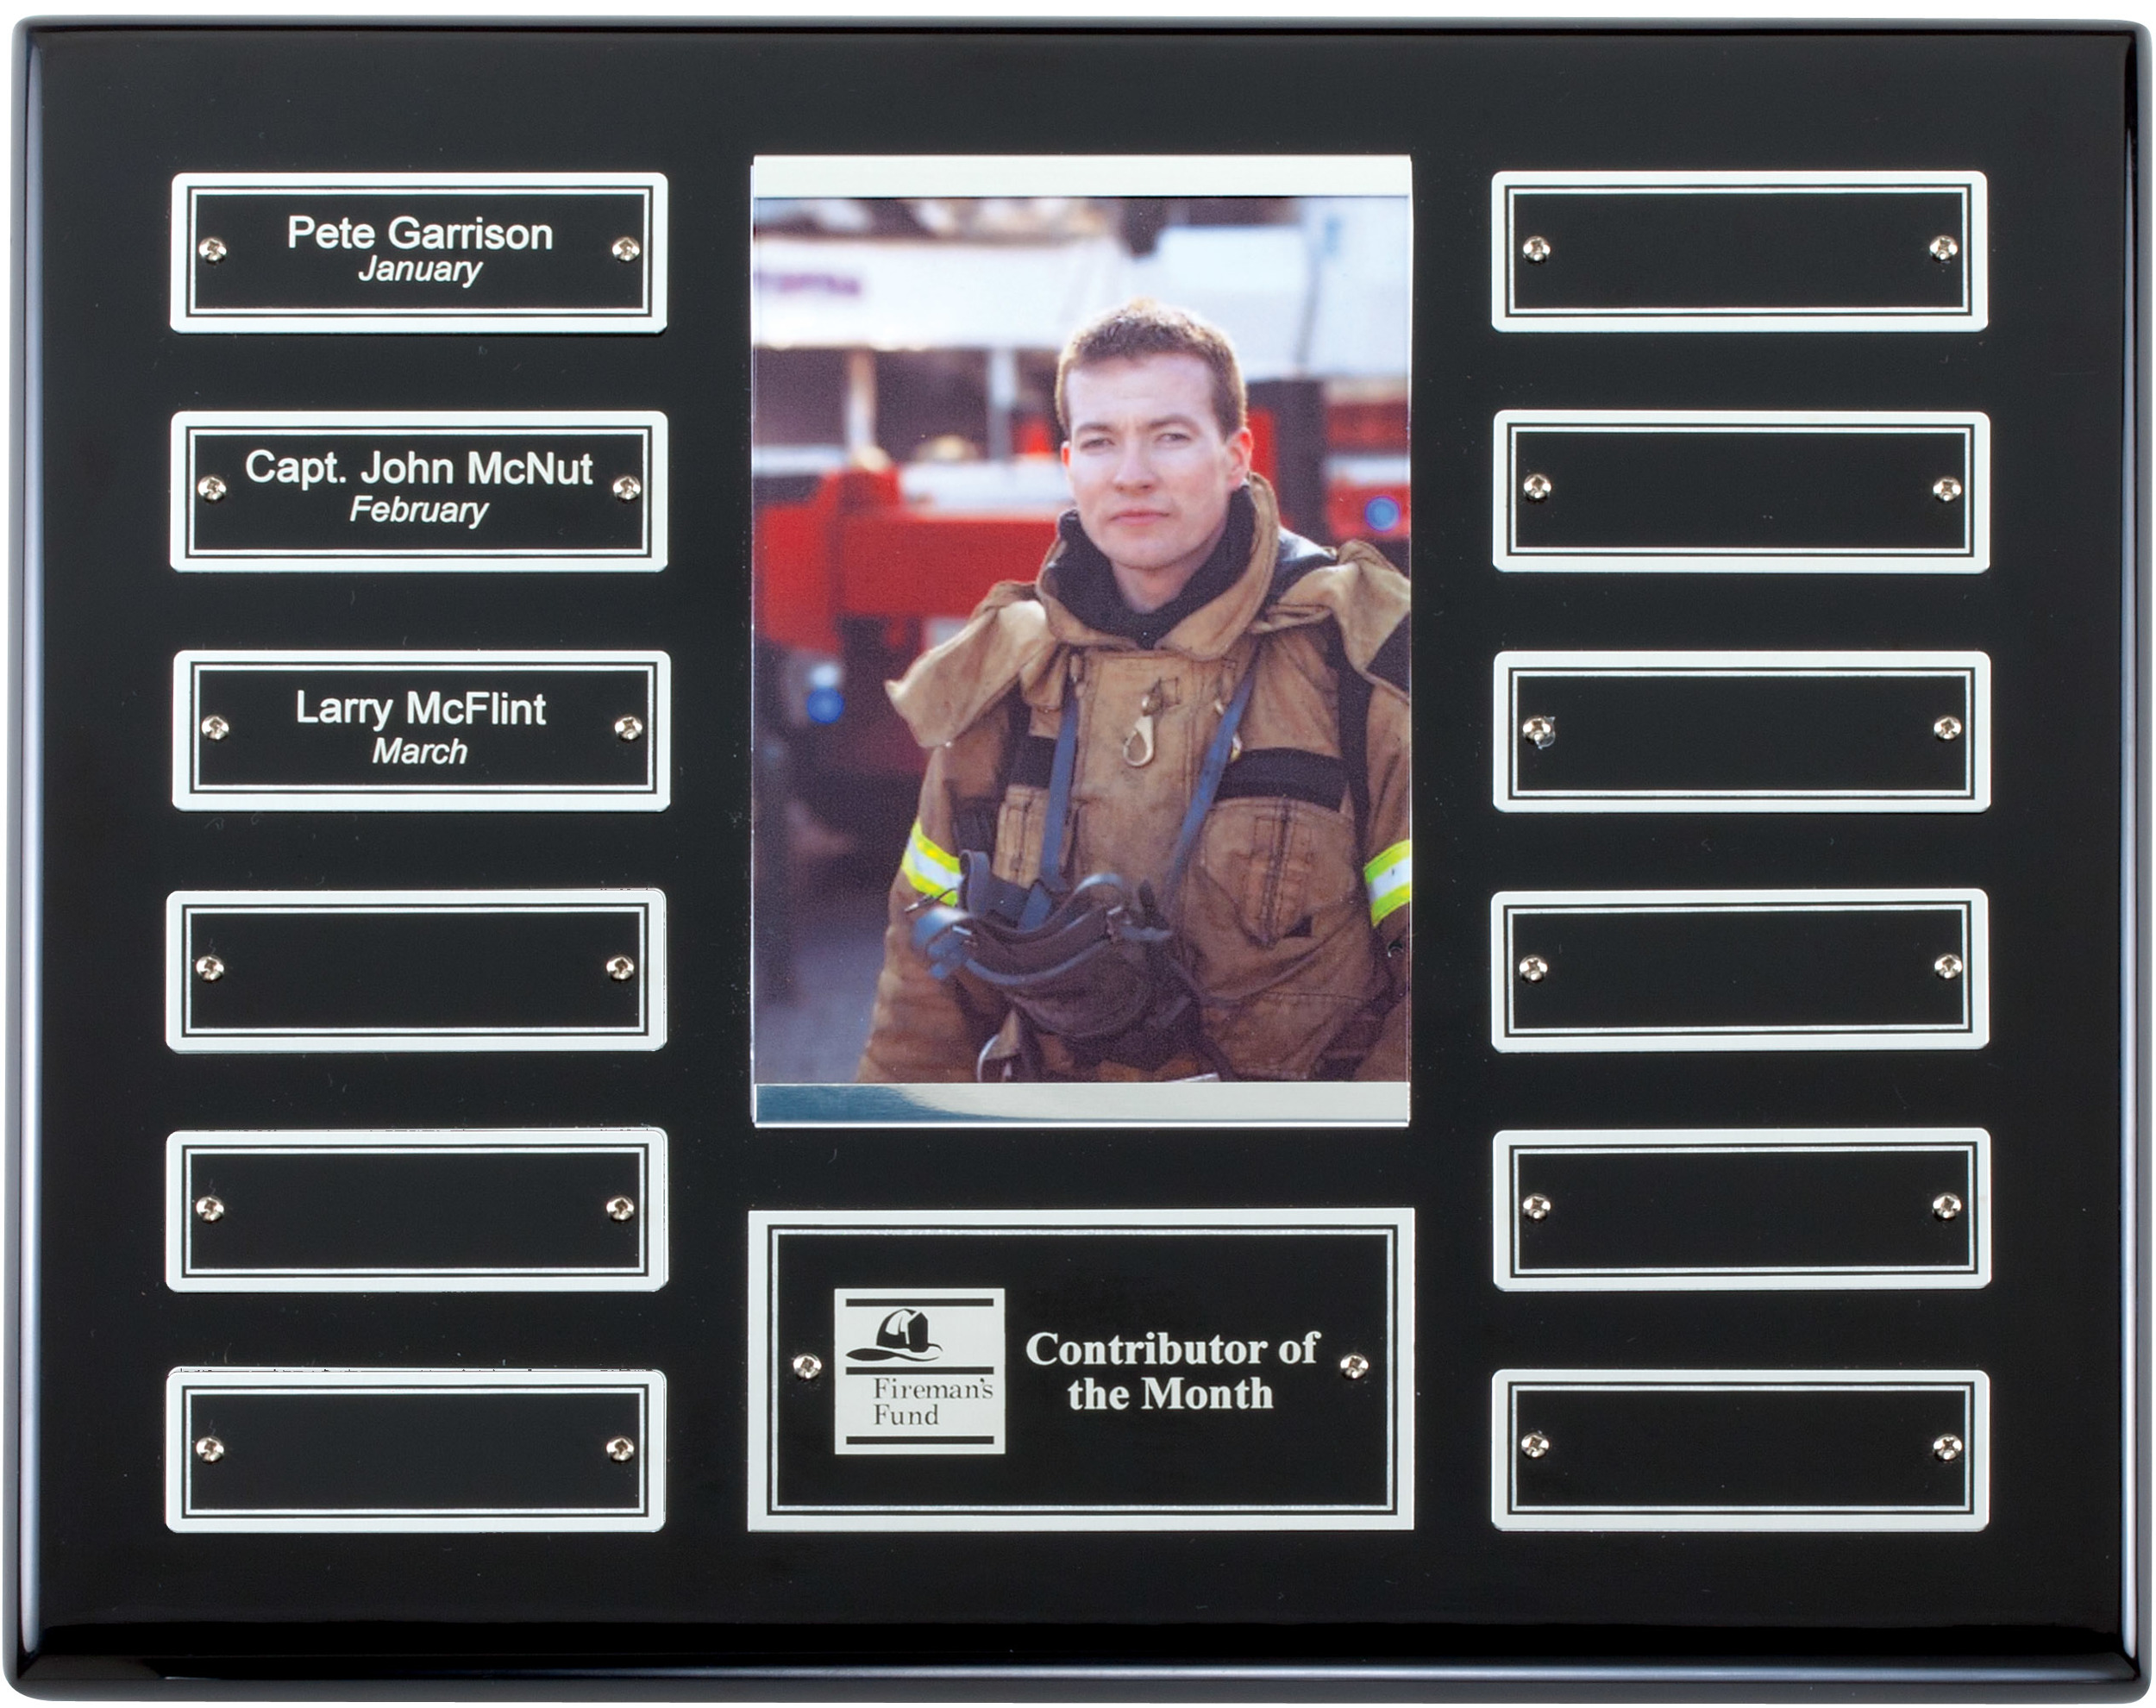 """Perpetual Plaque with Photo - APT515D-S   10.5"""""""" x 13"""" with 12 Silver trim plates (1"""" x 3"""") - Ebony Piano Finish   Price = $135  (Includes engraving on title plate and one name plate)"""